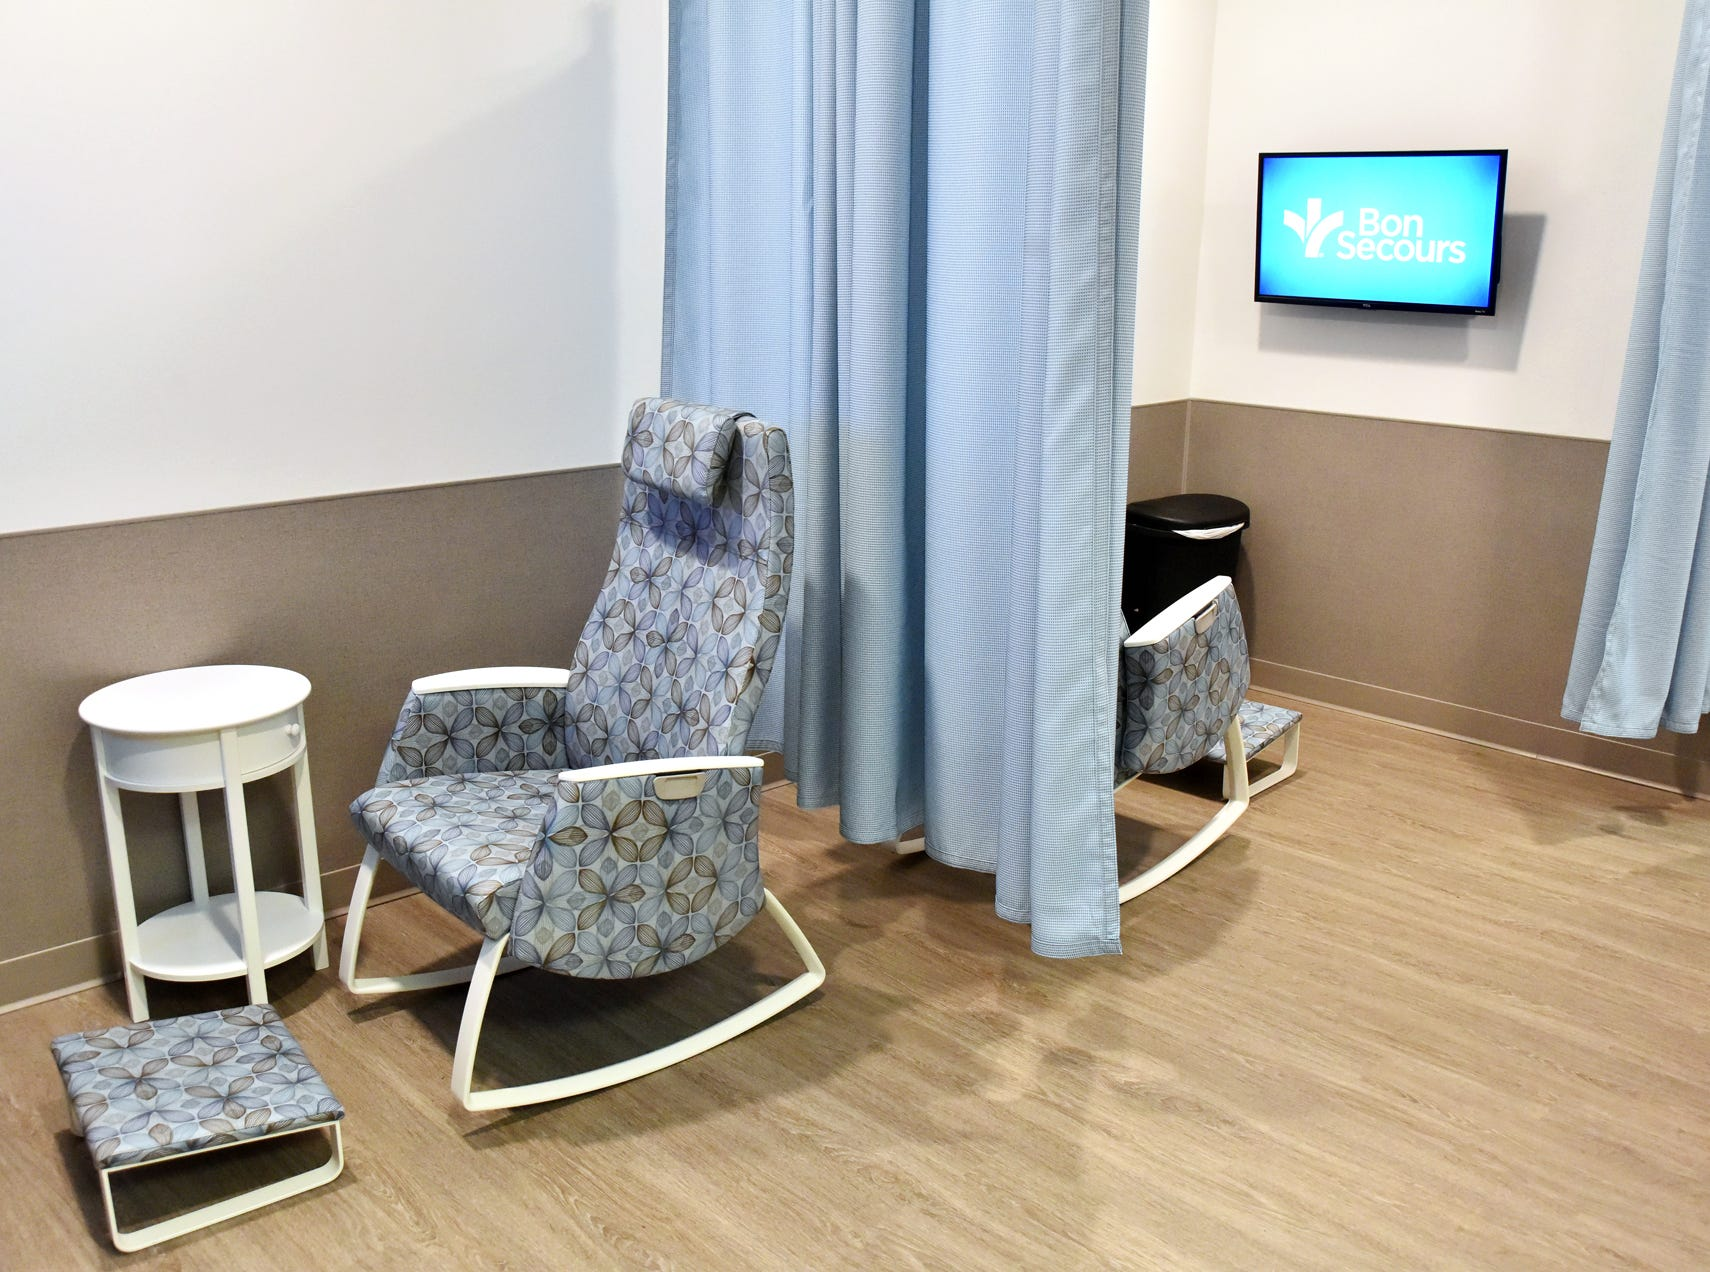 Private nursing areas with rocking chairs and curtains are part of the  mothers nursing suite at the Bon Secours Wellness arena.